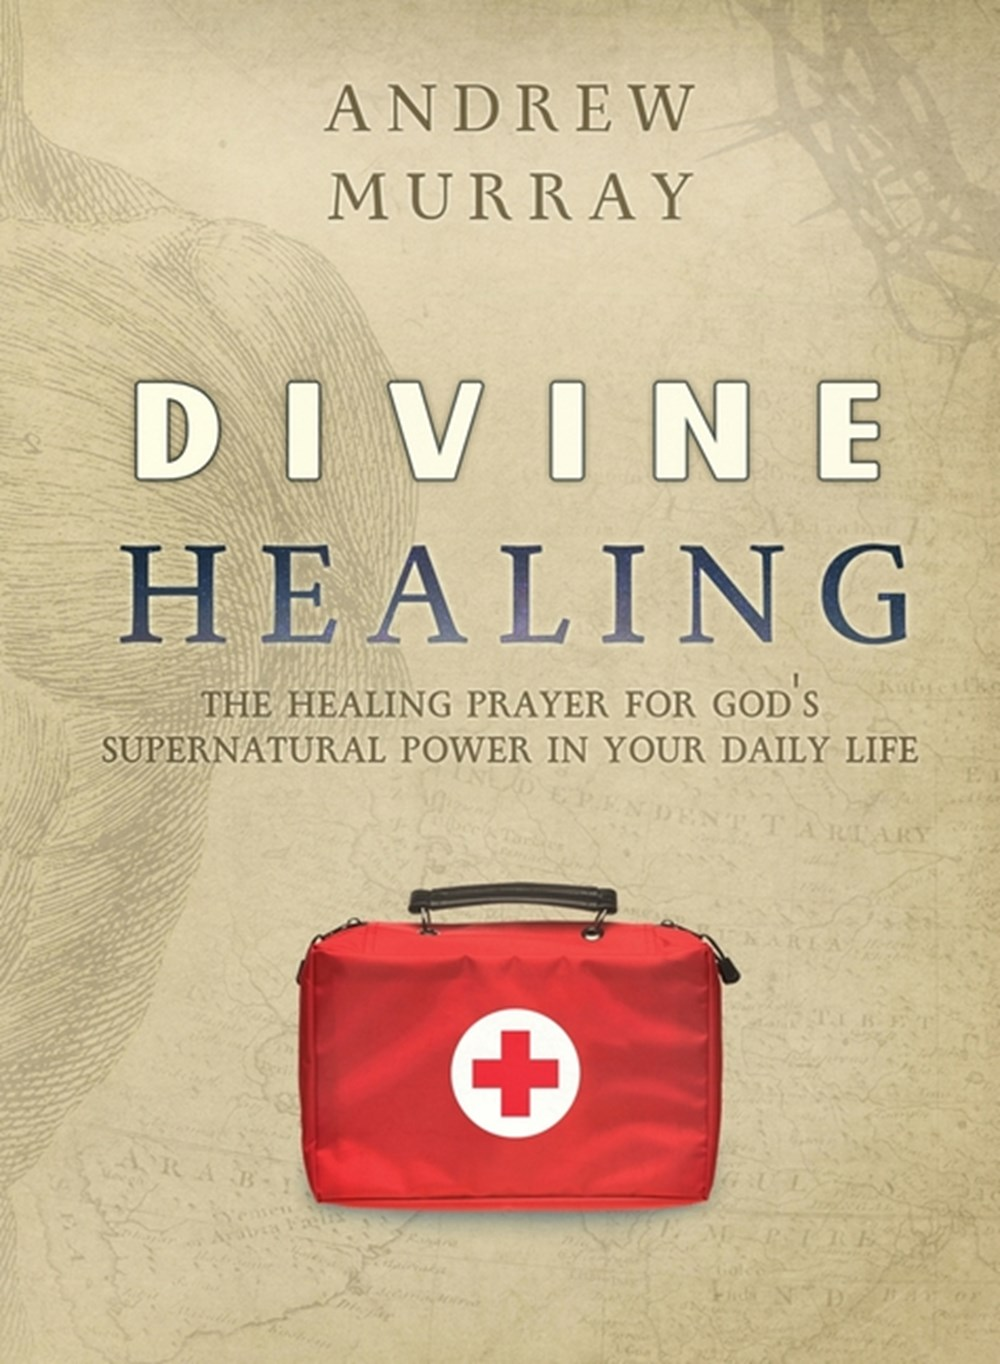 Divine Healing The healing prayer for God's supernatural power in your daily life